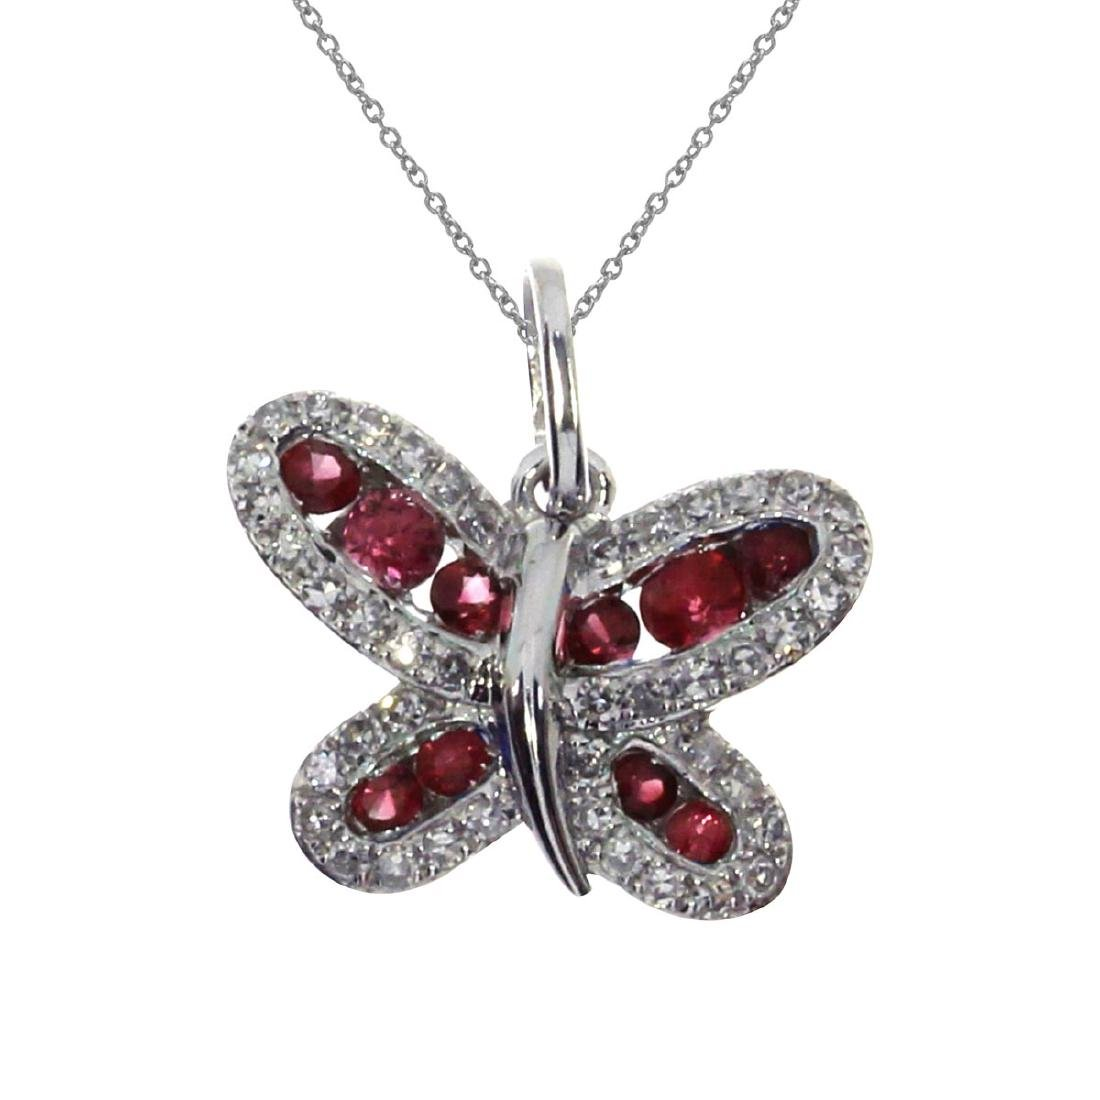 Certified 14k White Gold Ruby Butterfly Pendant 0.37 CT